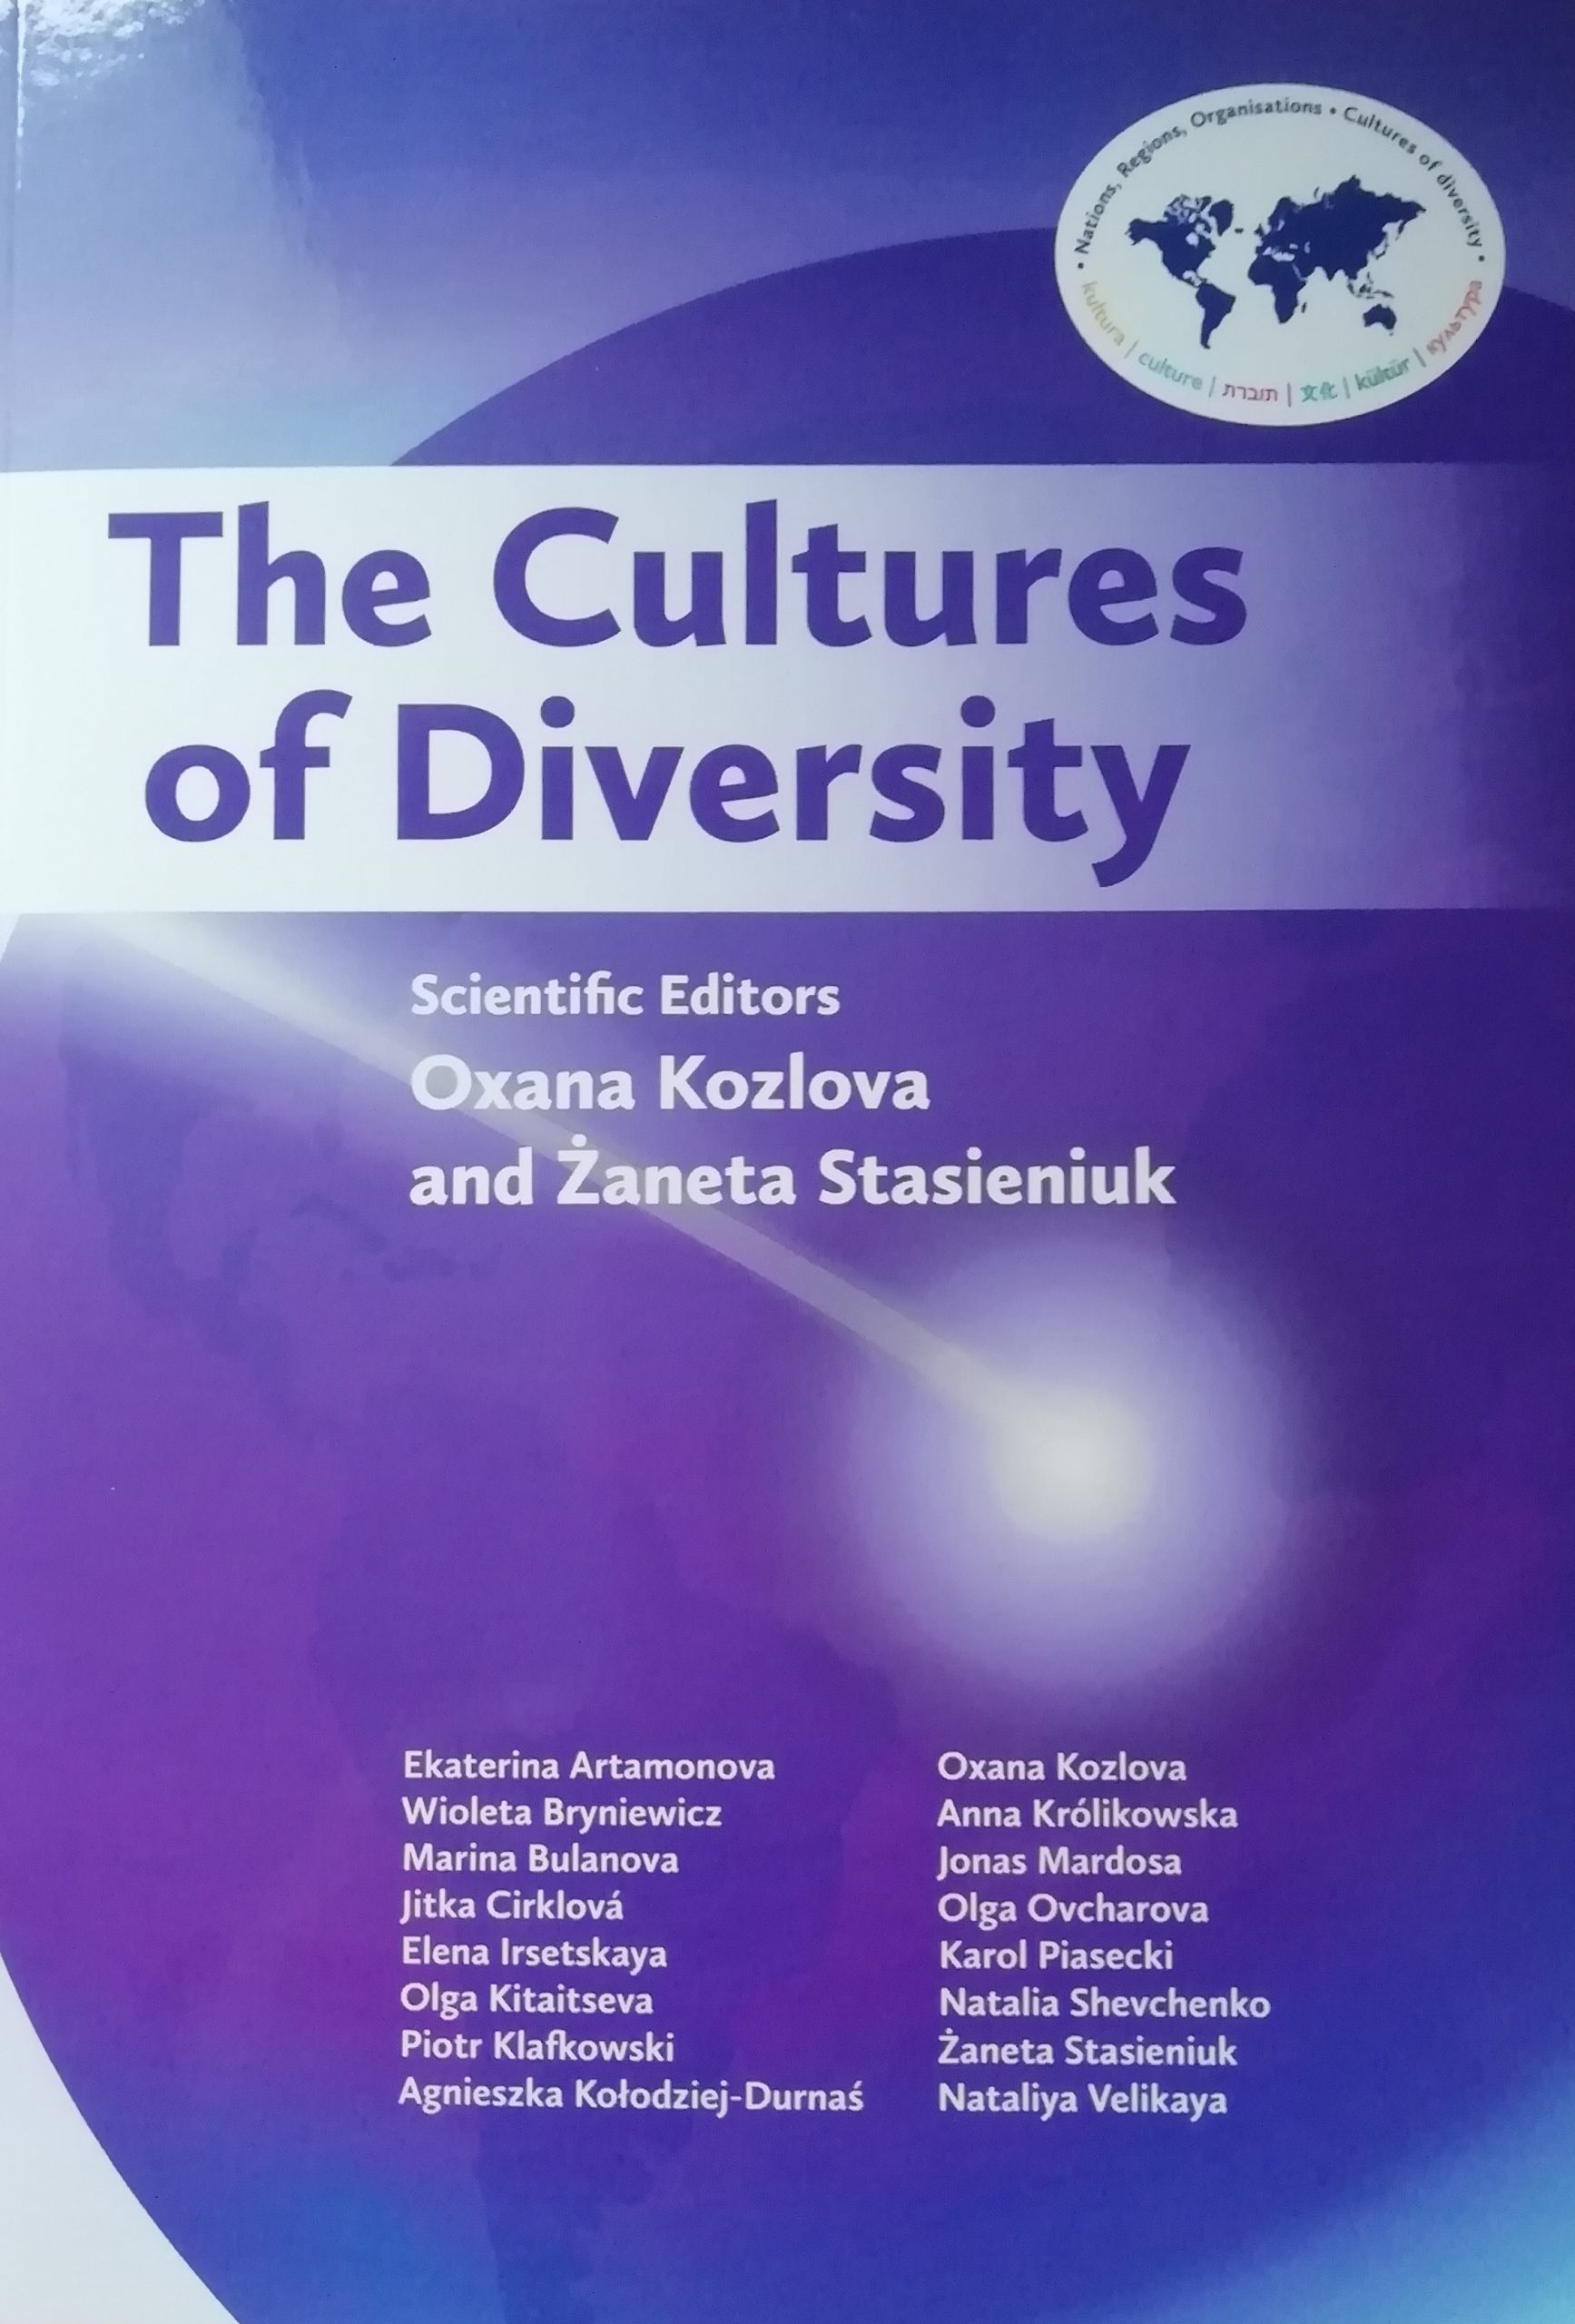 The Cultures of Diversity